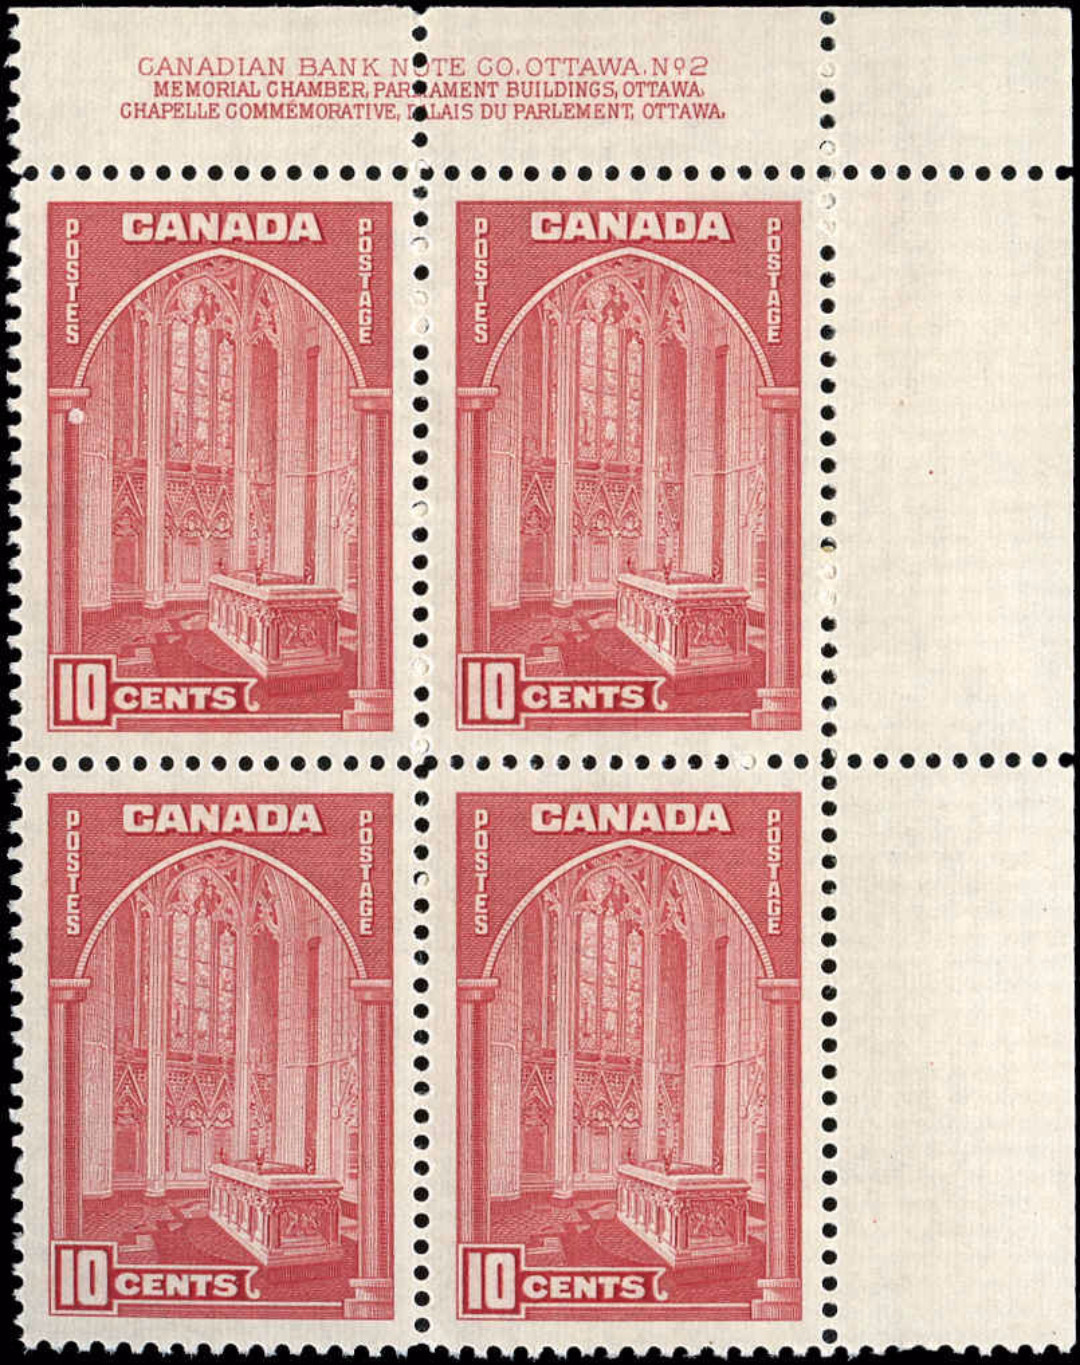 Canada #241, 1938 Pictorial Issue, VF, MNH